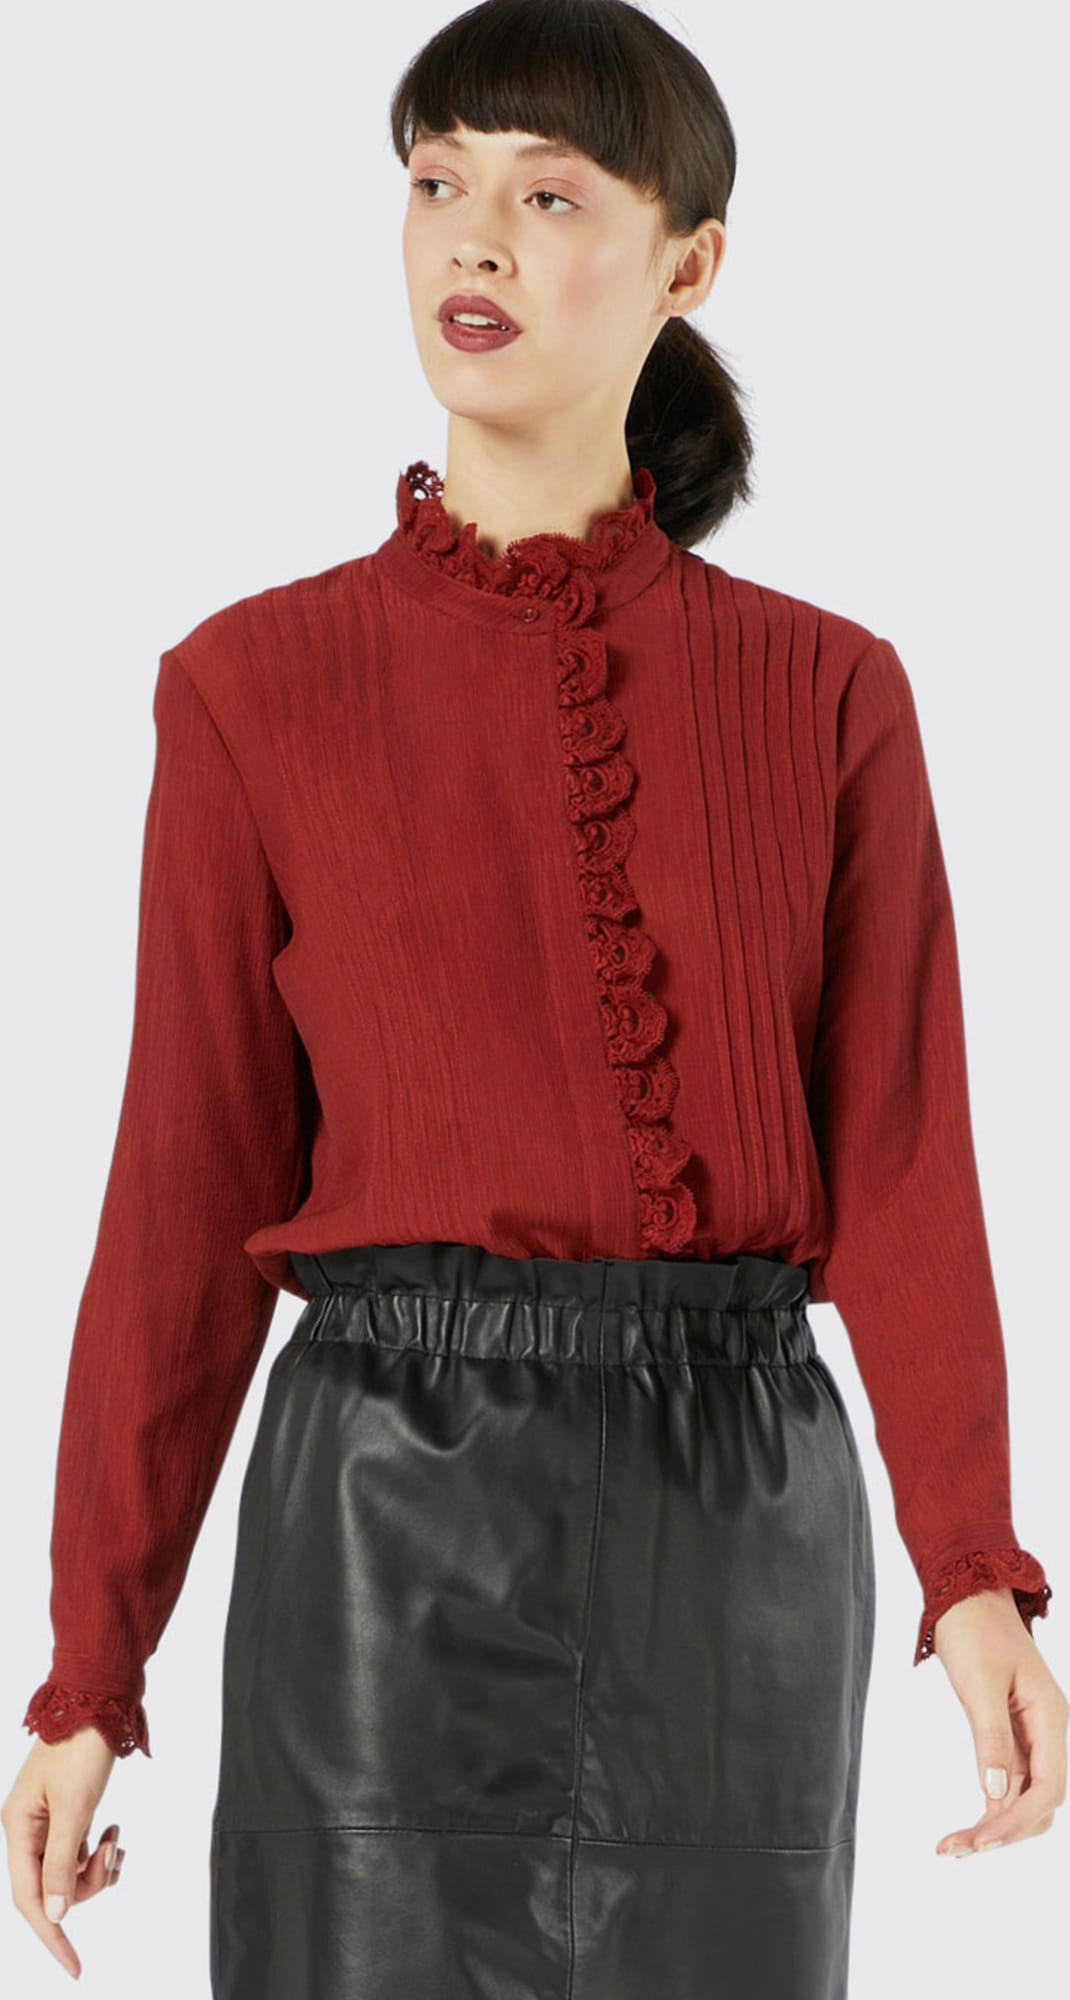 Blouse Designs Stand Collar : Ivy oak blouse stand up lace collar in rood about you